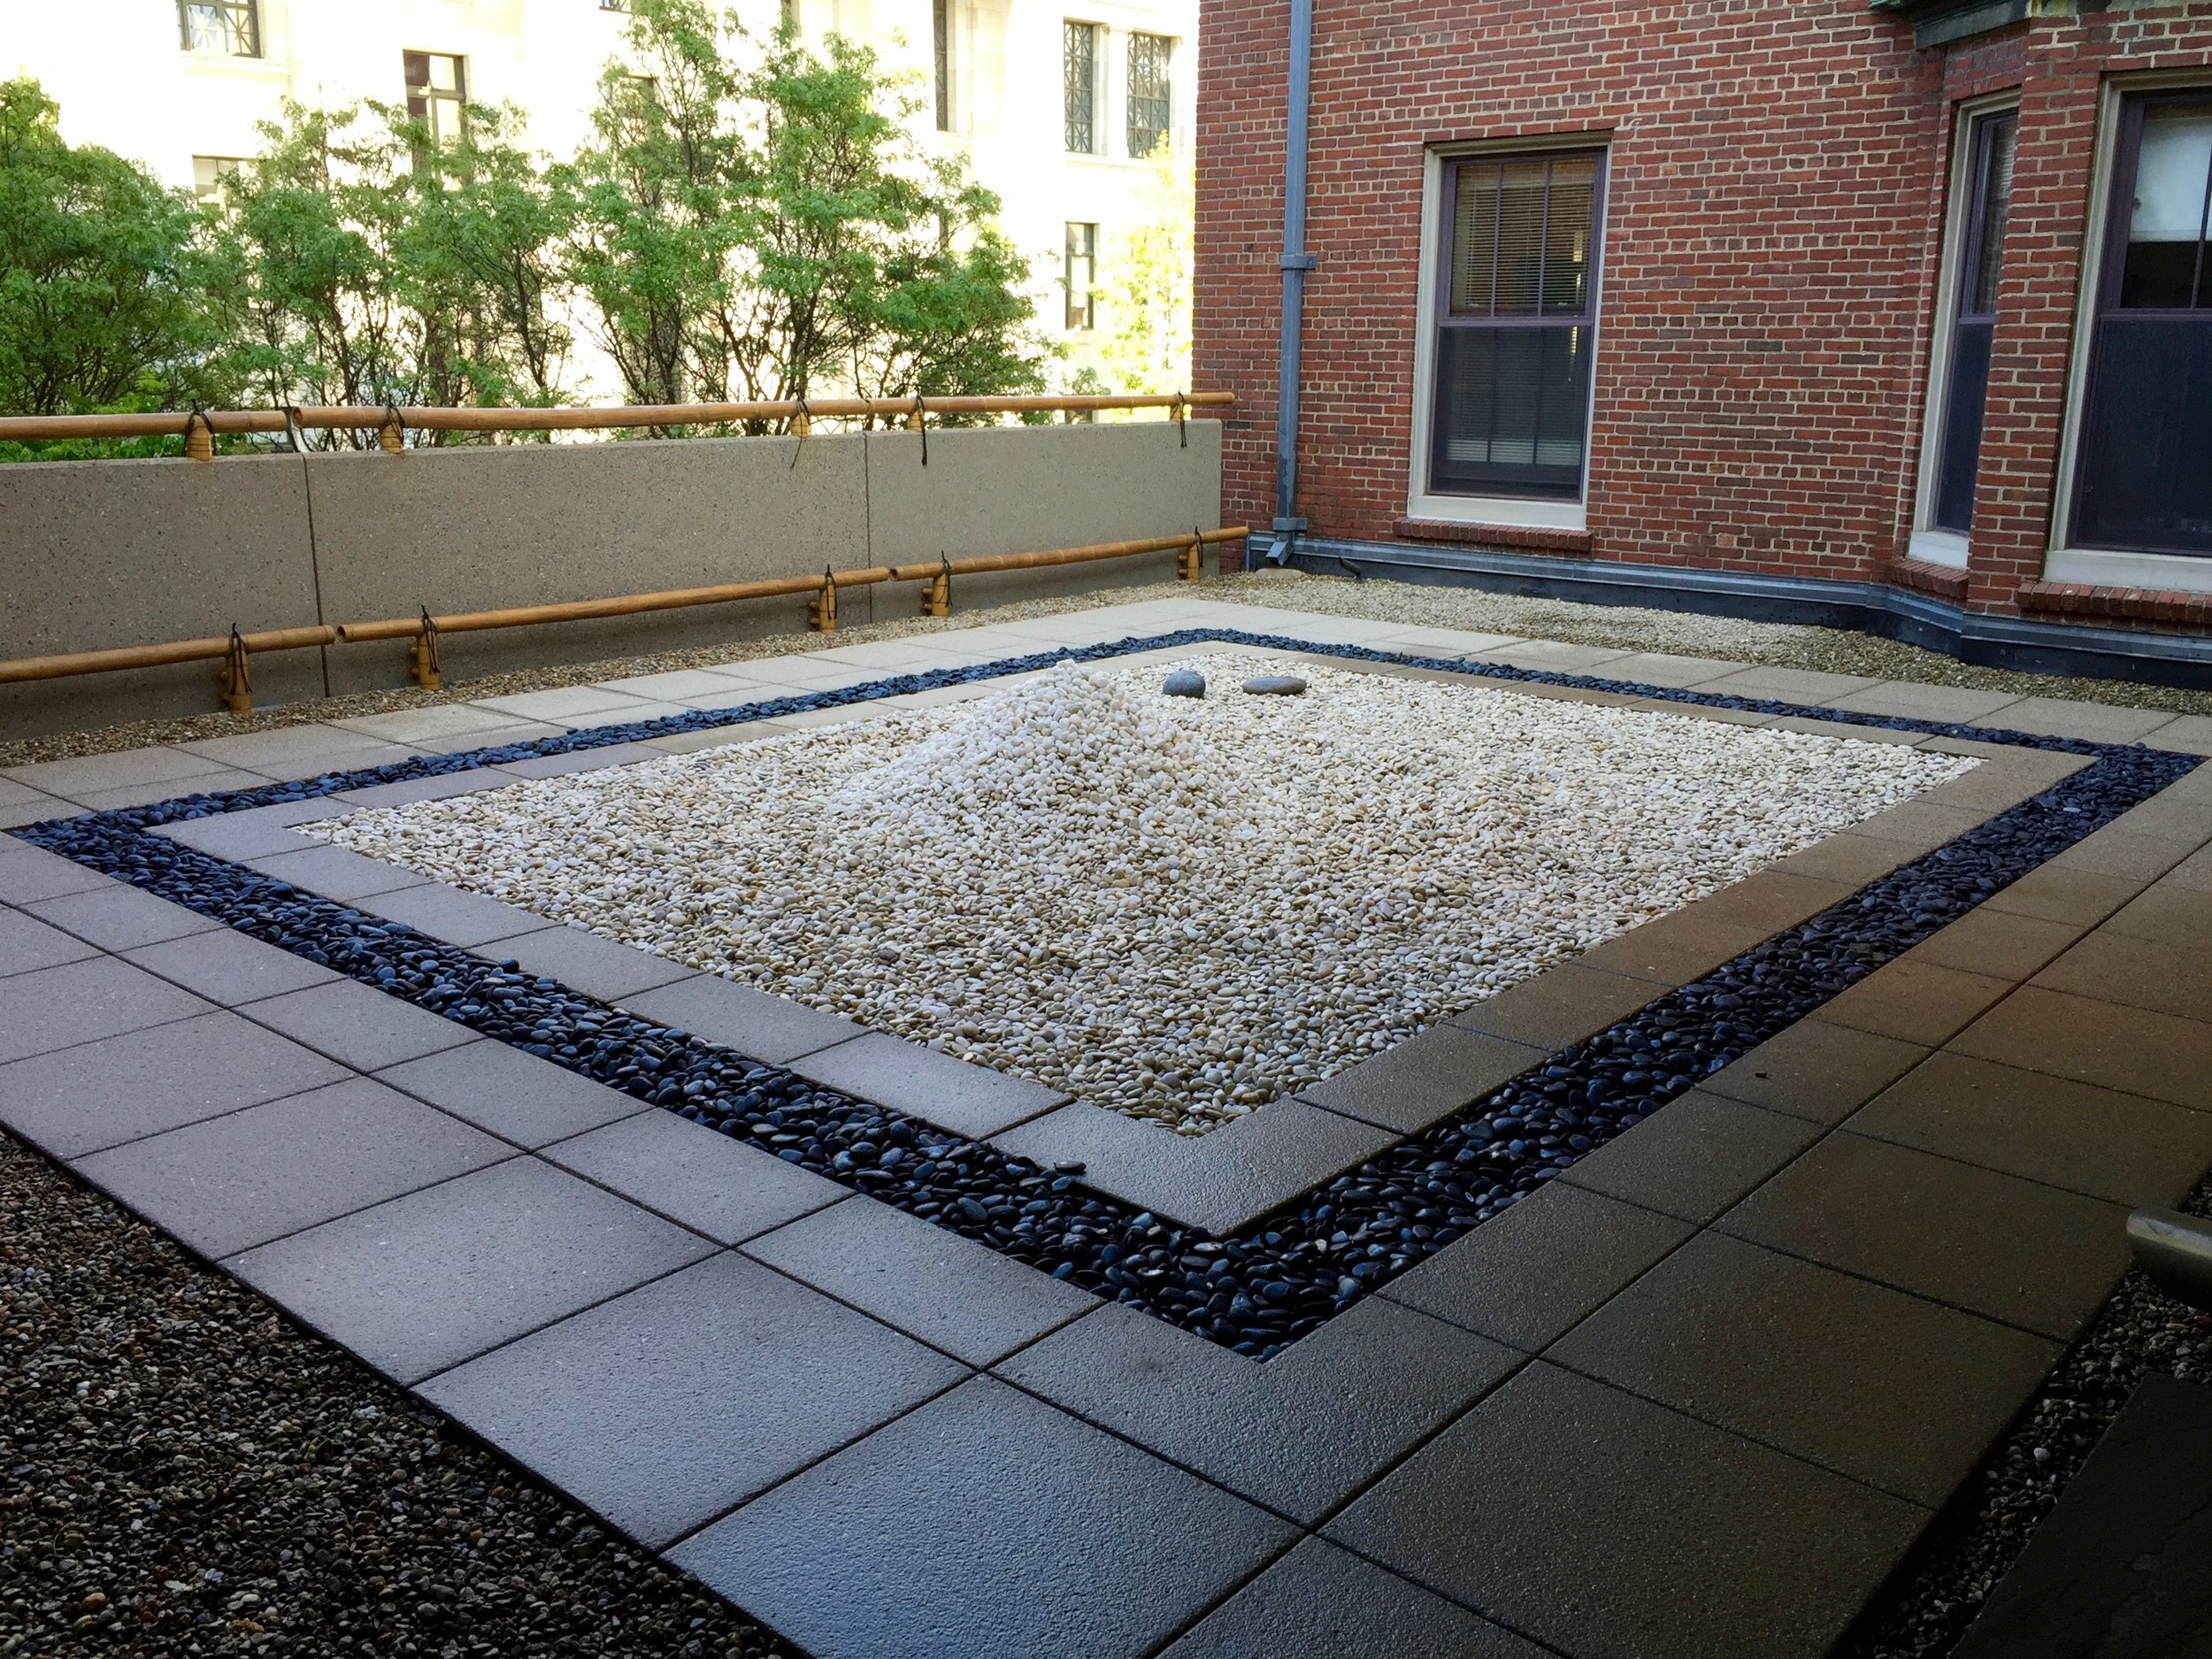 recover-green-roofs-brigham-womens-2015-2.jpg